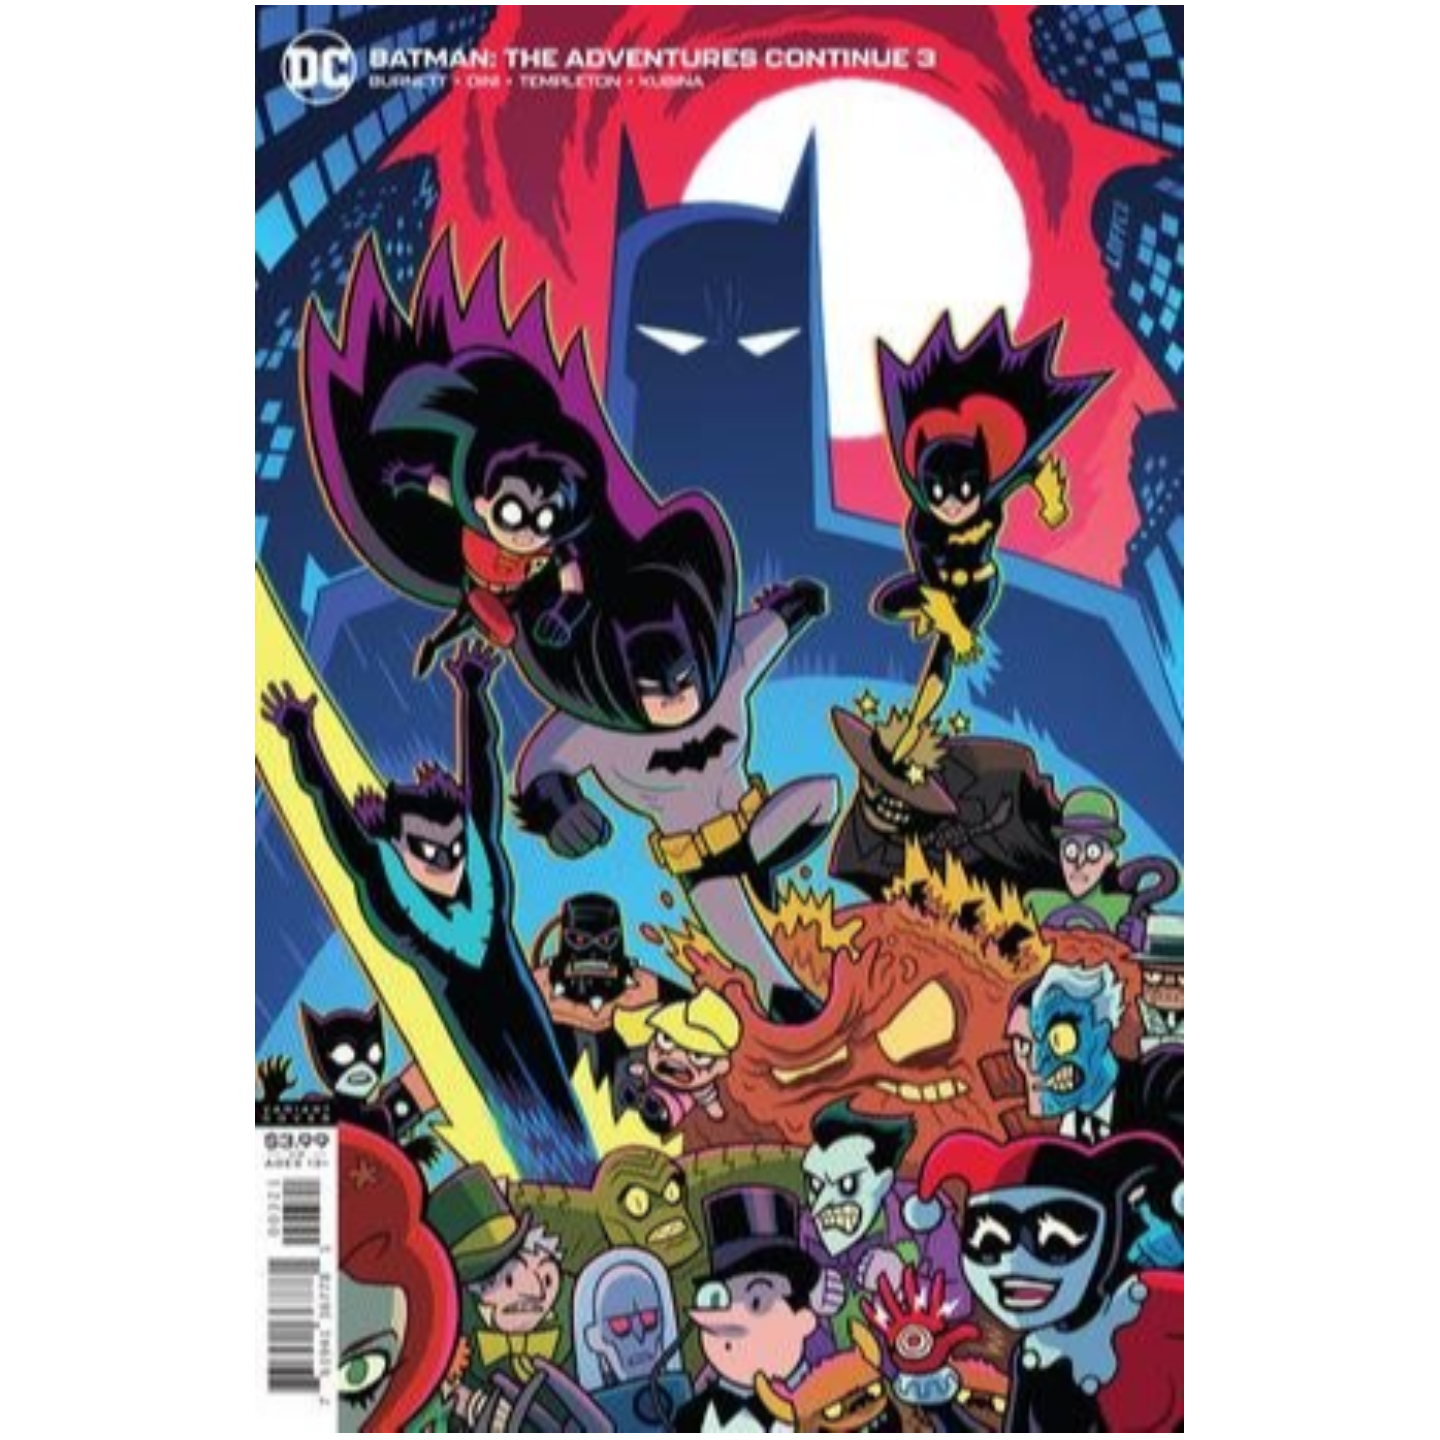 BATMAN THE ADVENTURES CONTINUE 3 OF 6 CVR B DAN HIPP VAR